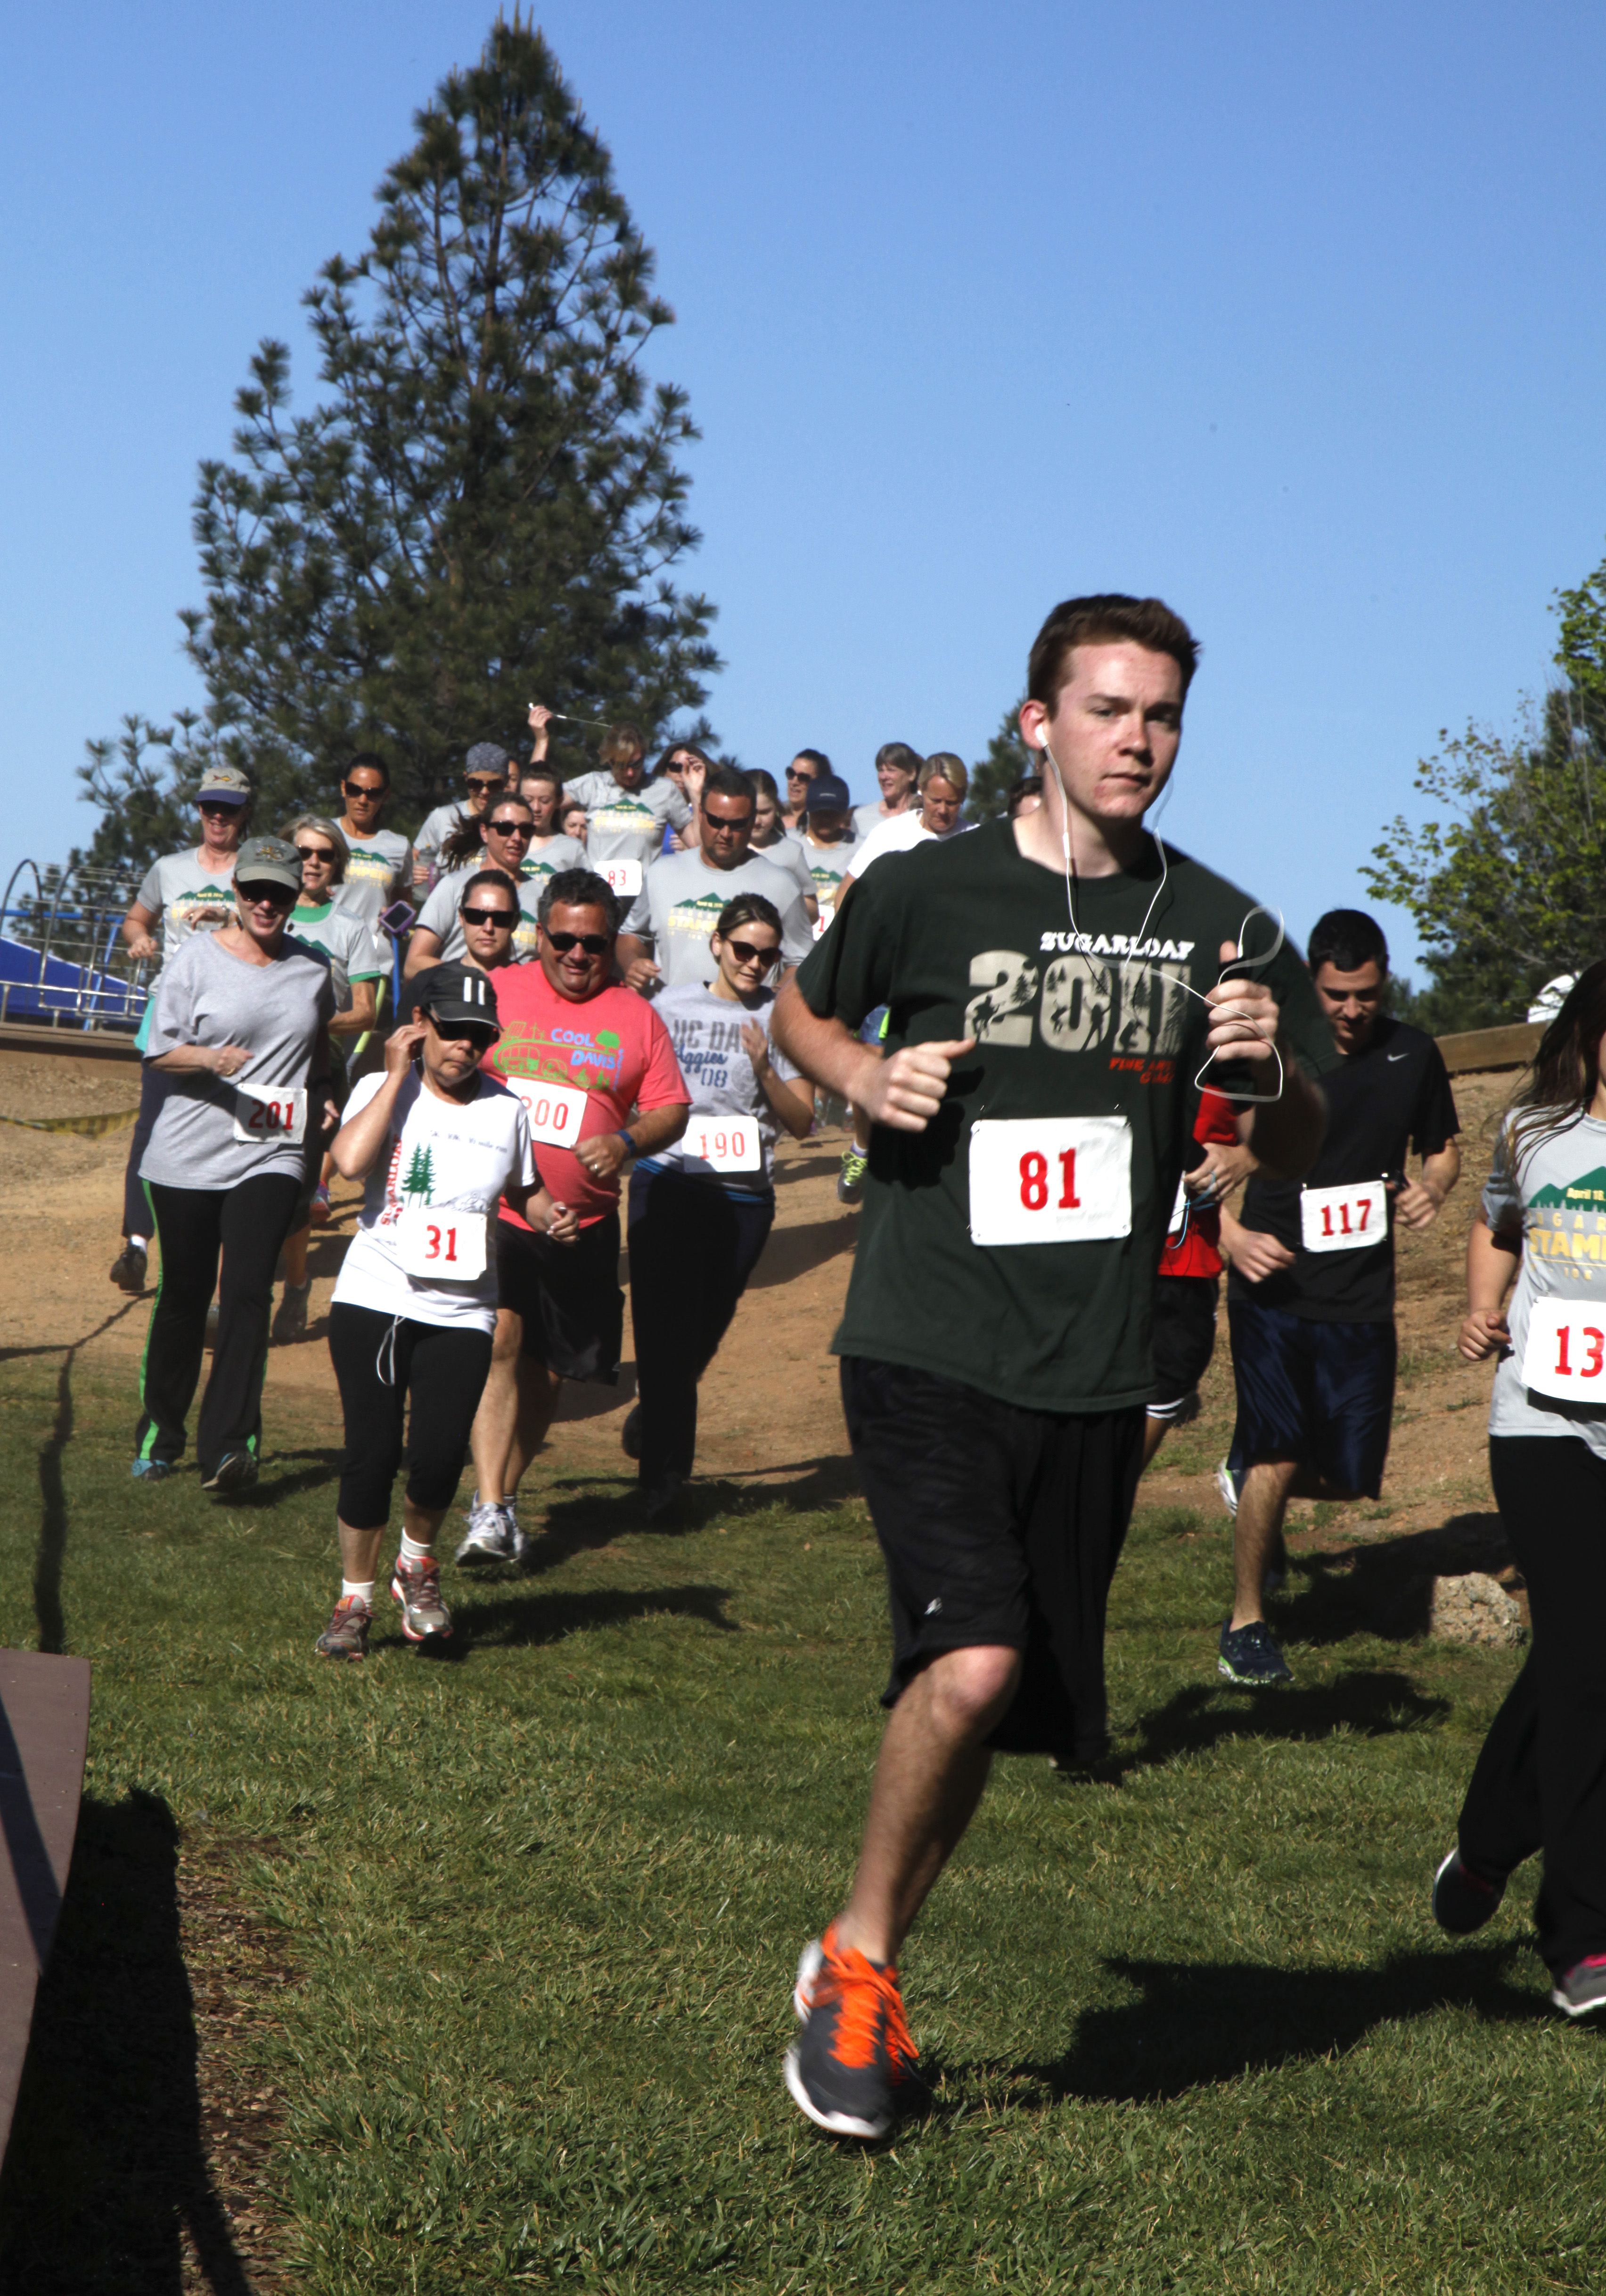 Runners stampede to raise money for camp scholarships